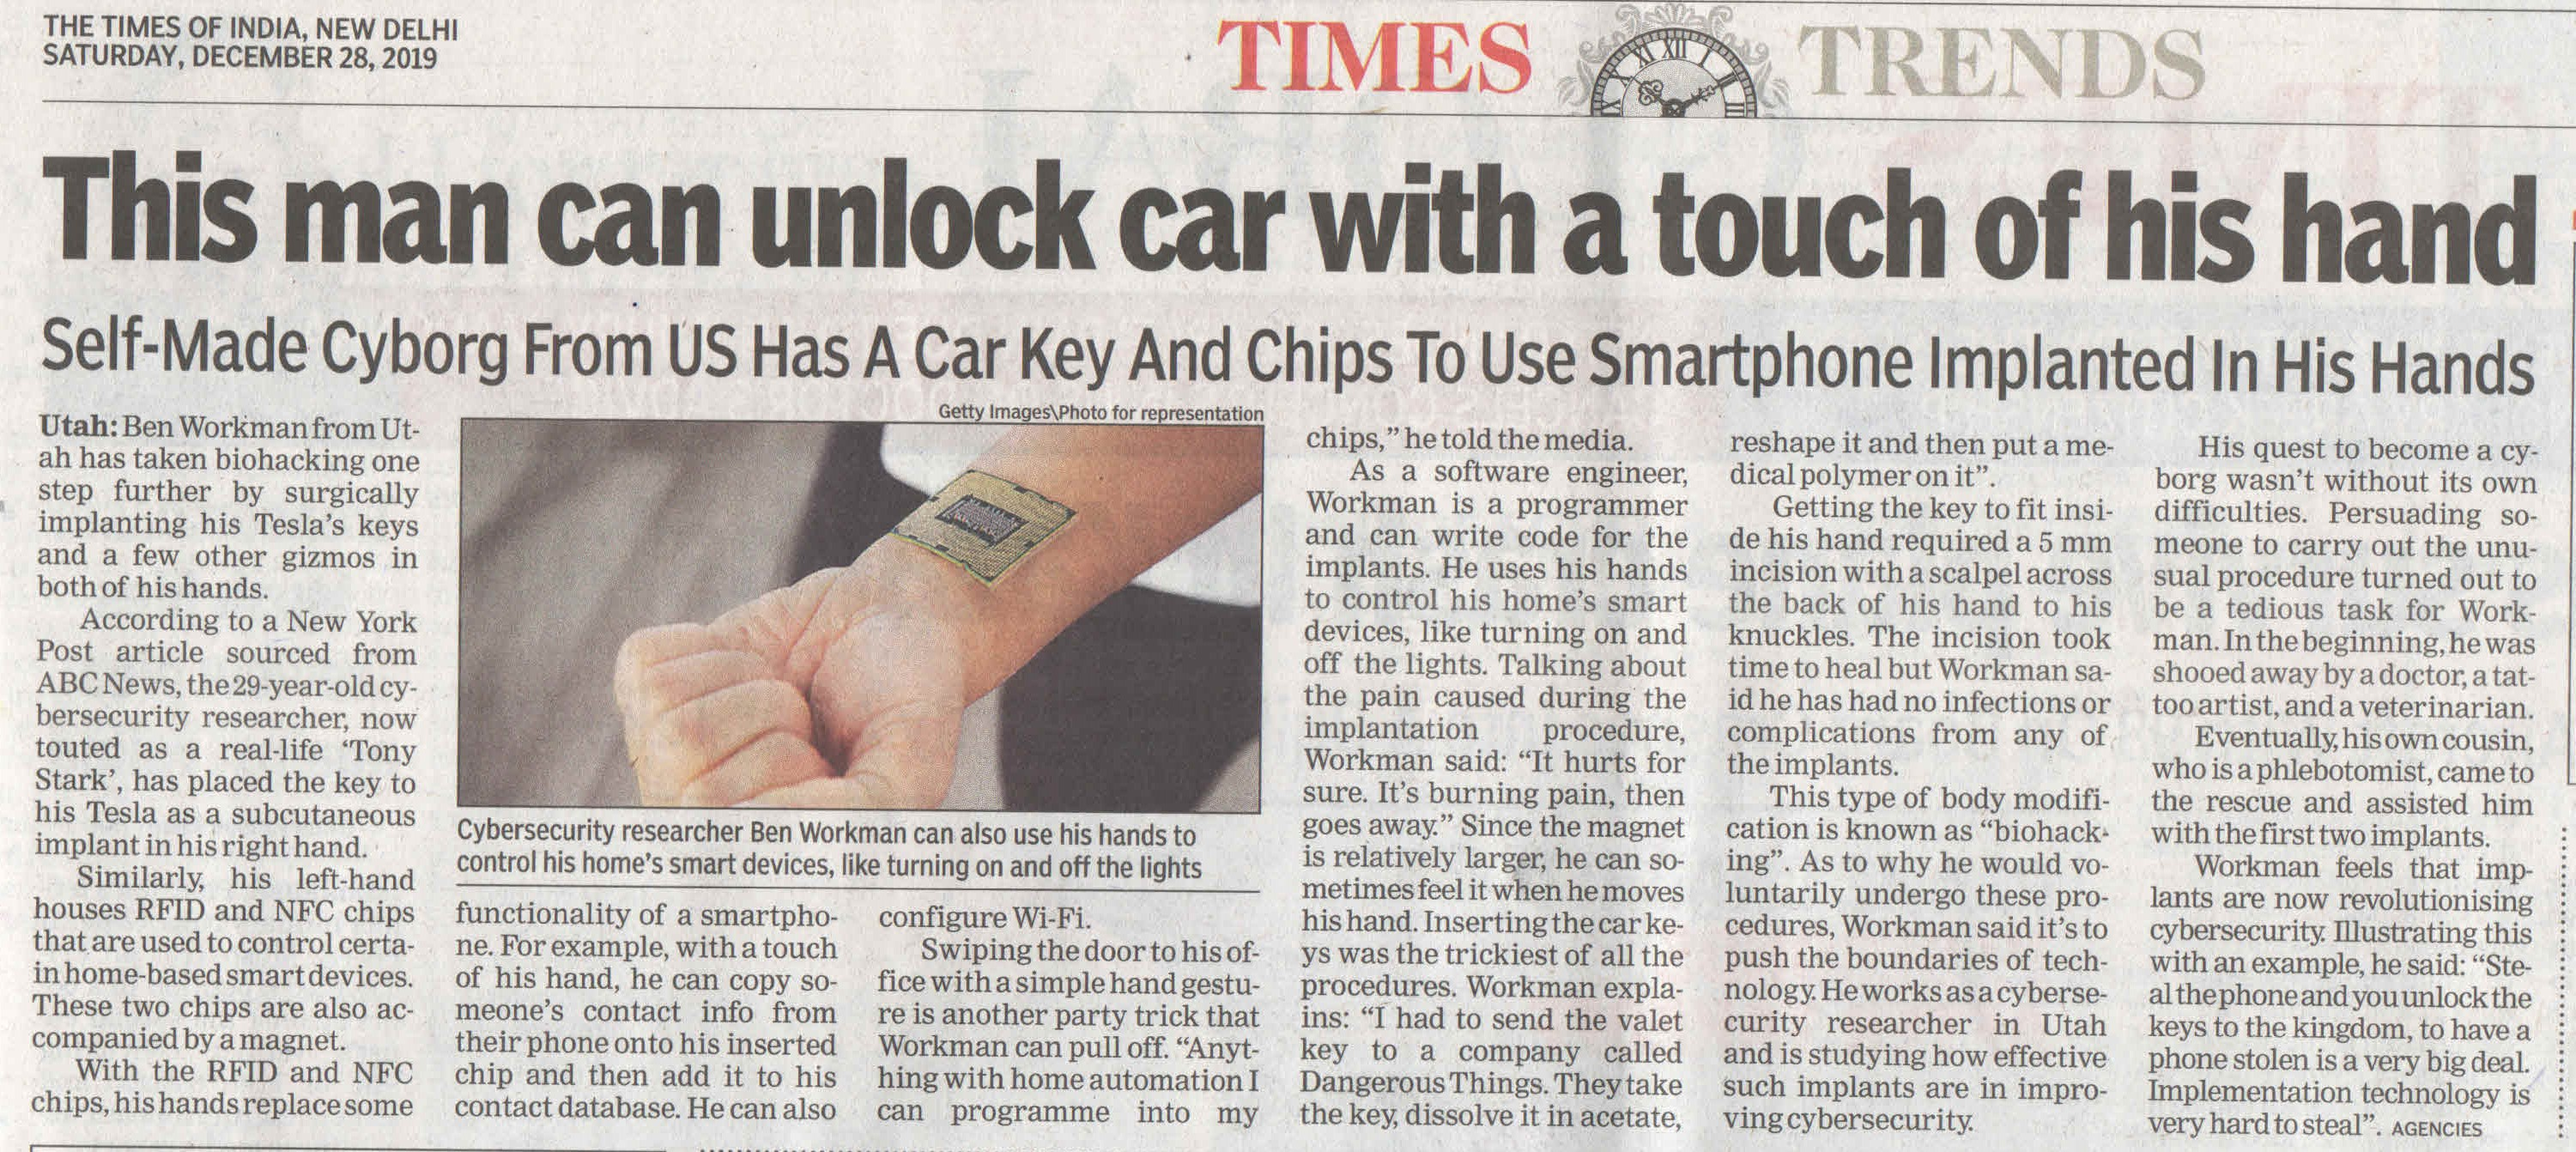 This man can unlock car with a touch of his hand